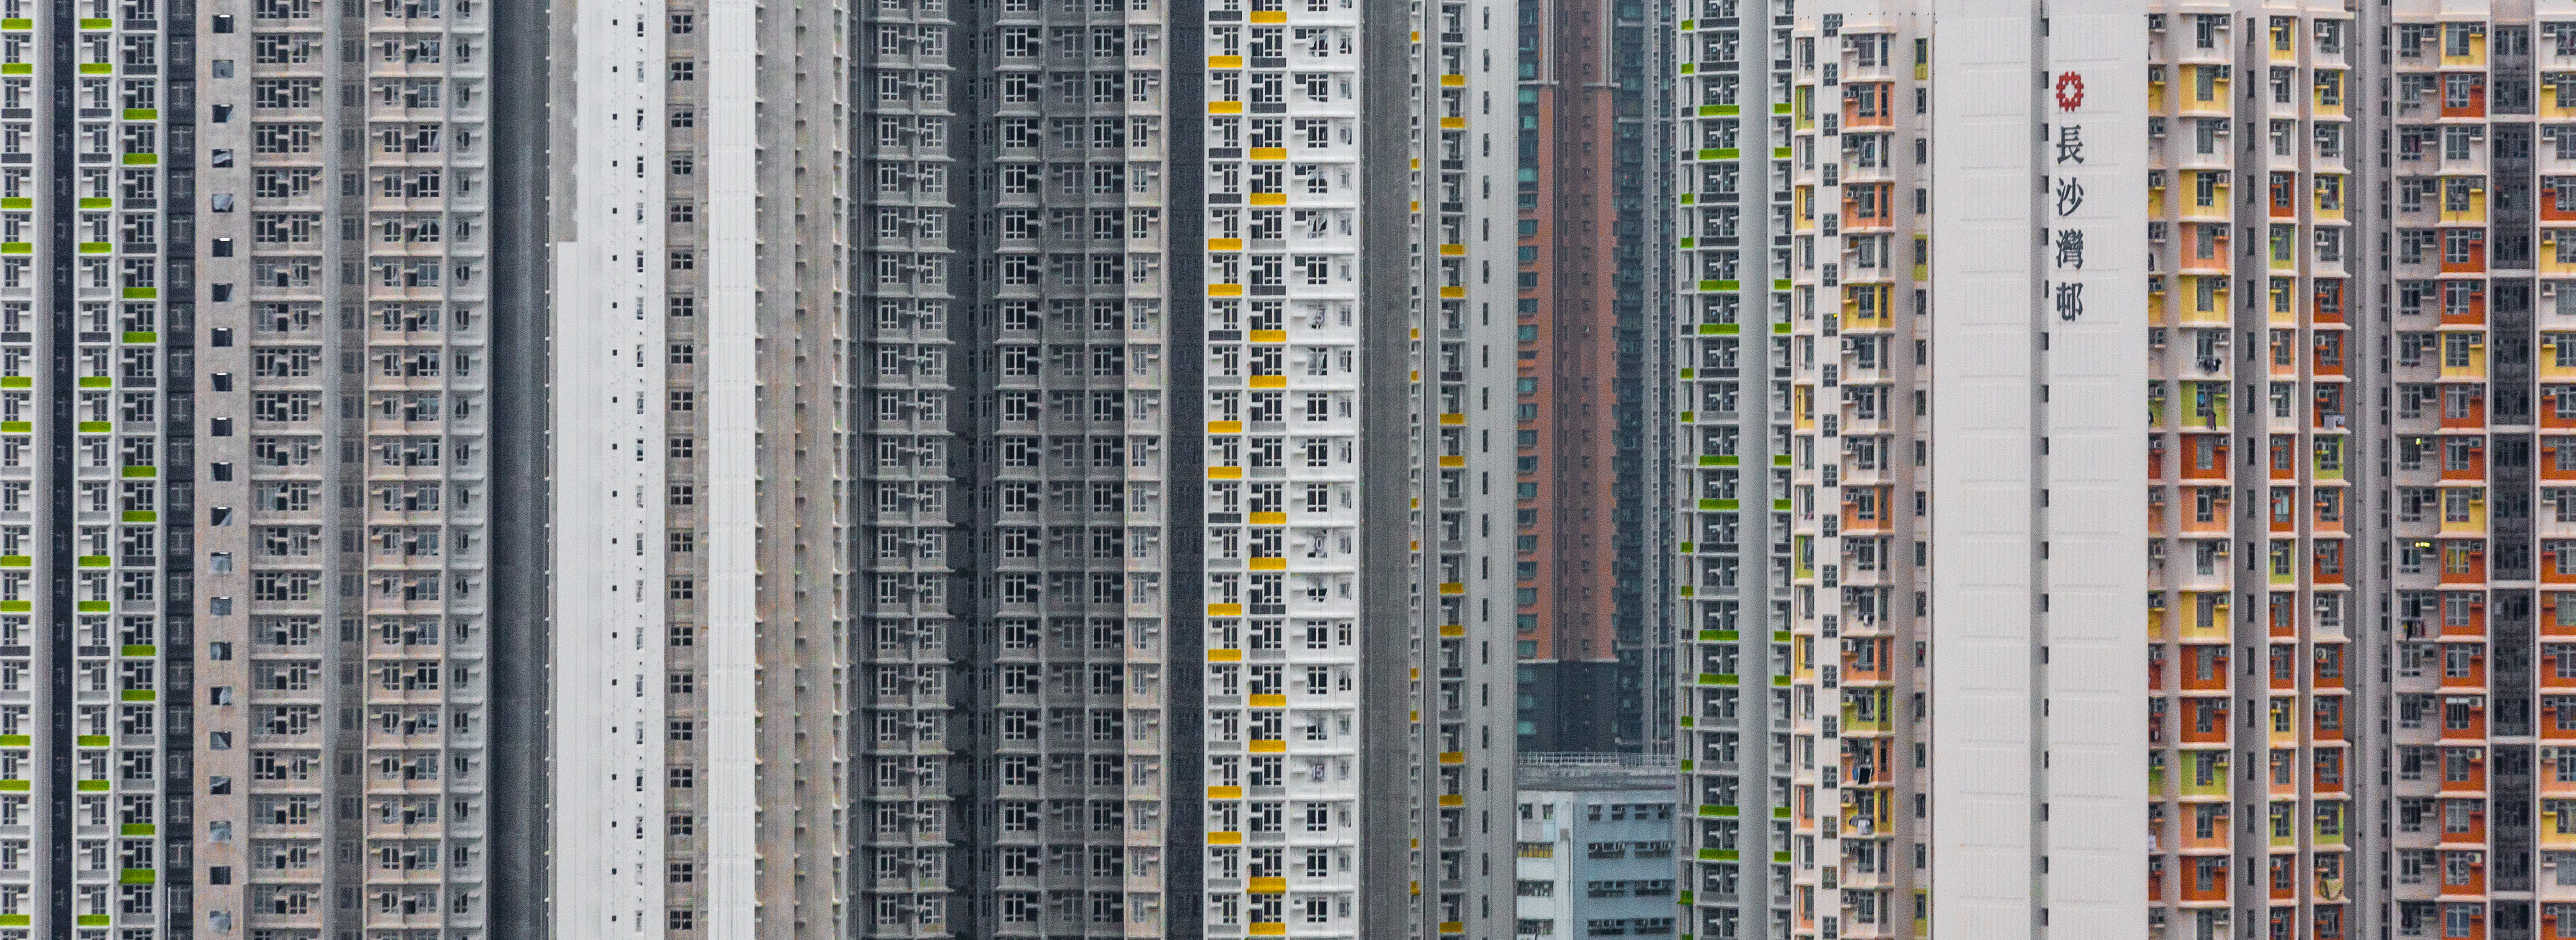 Urban Dwelling, Hong Kong